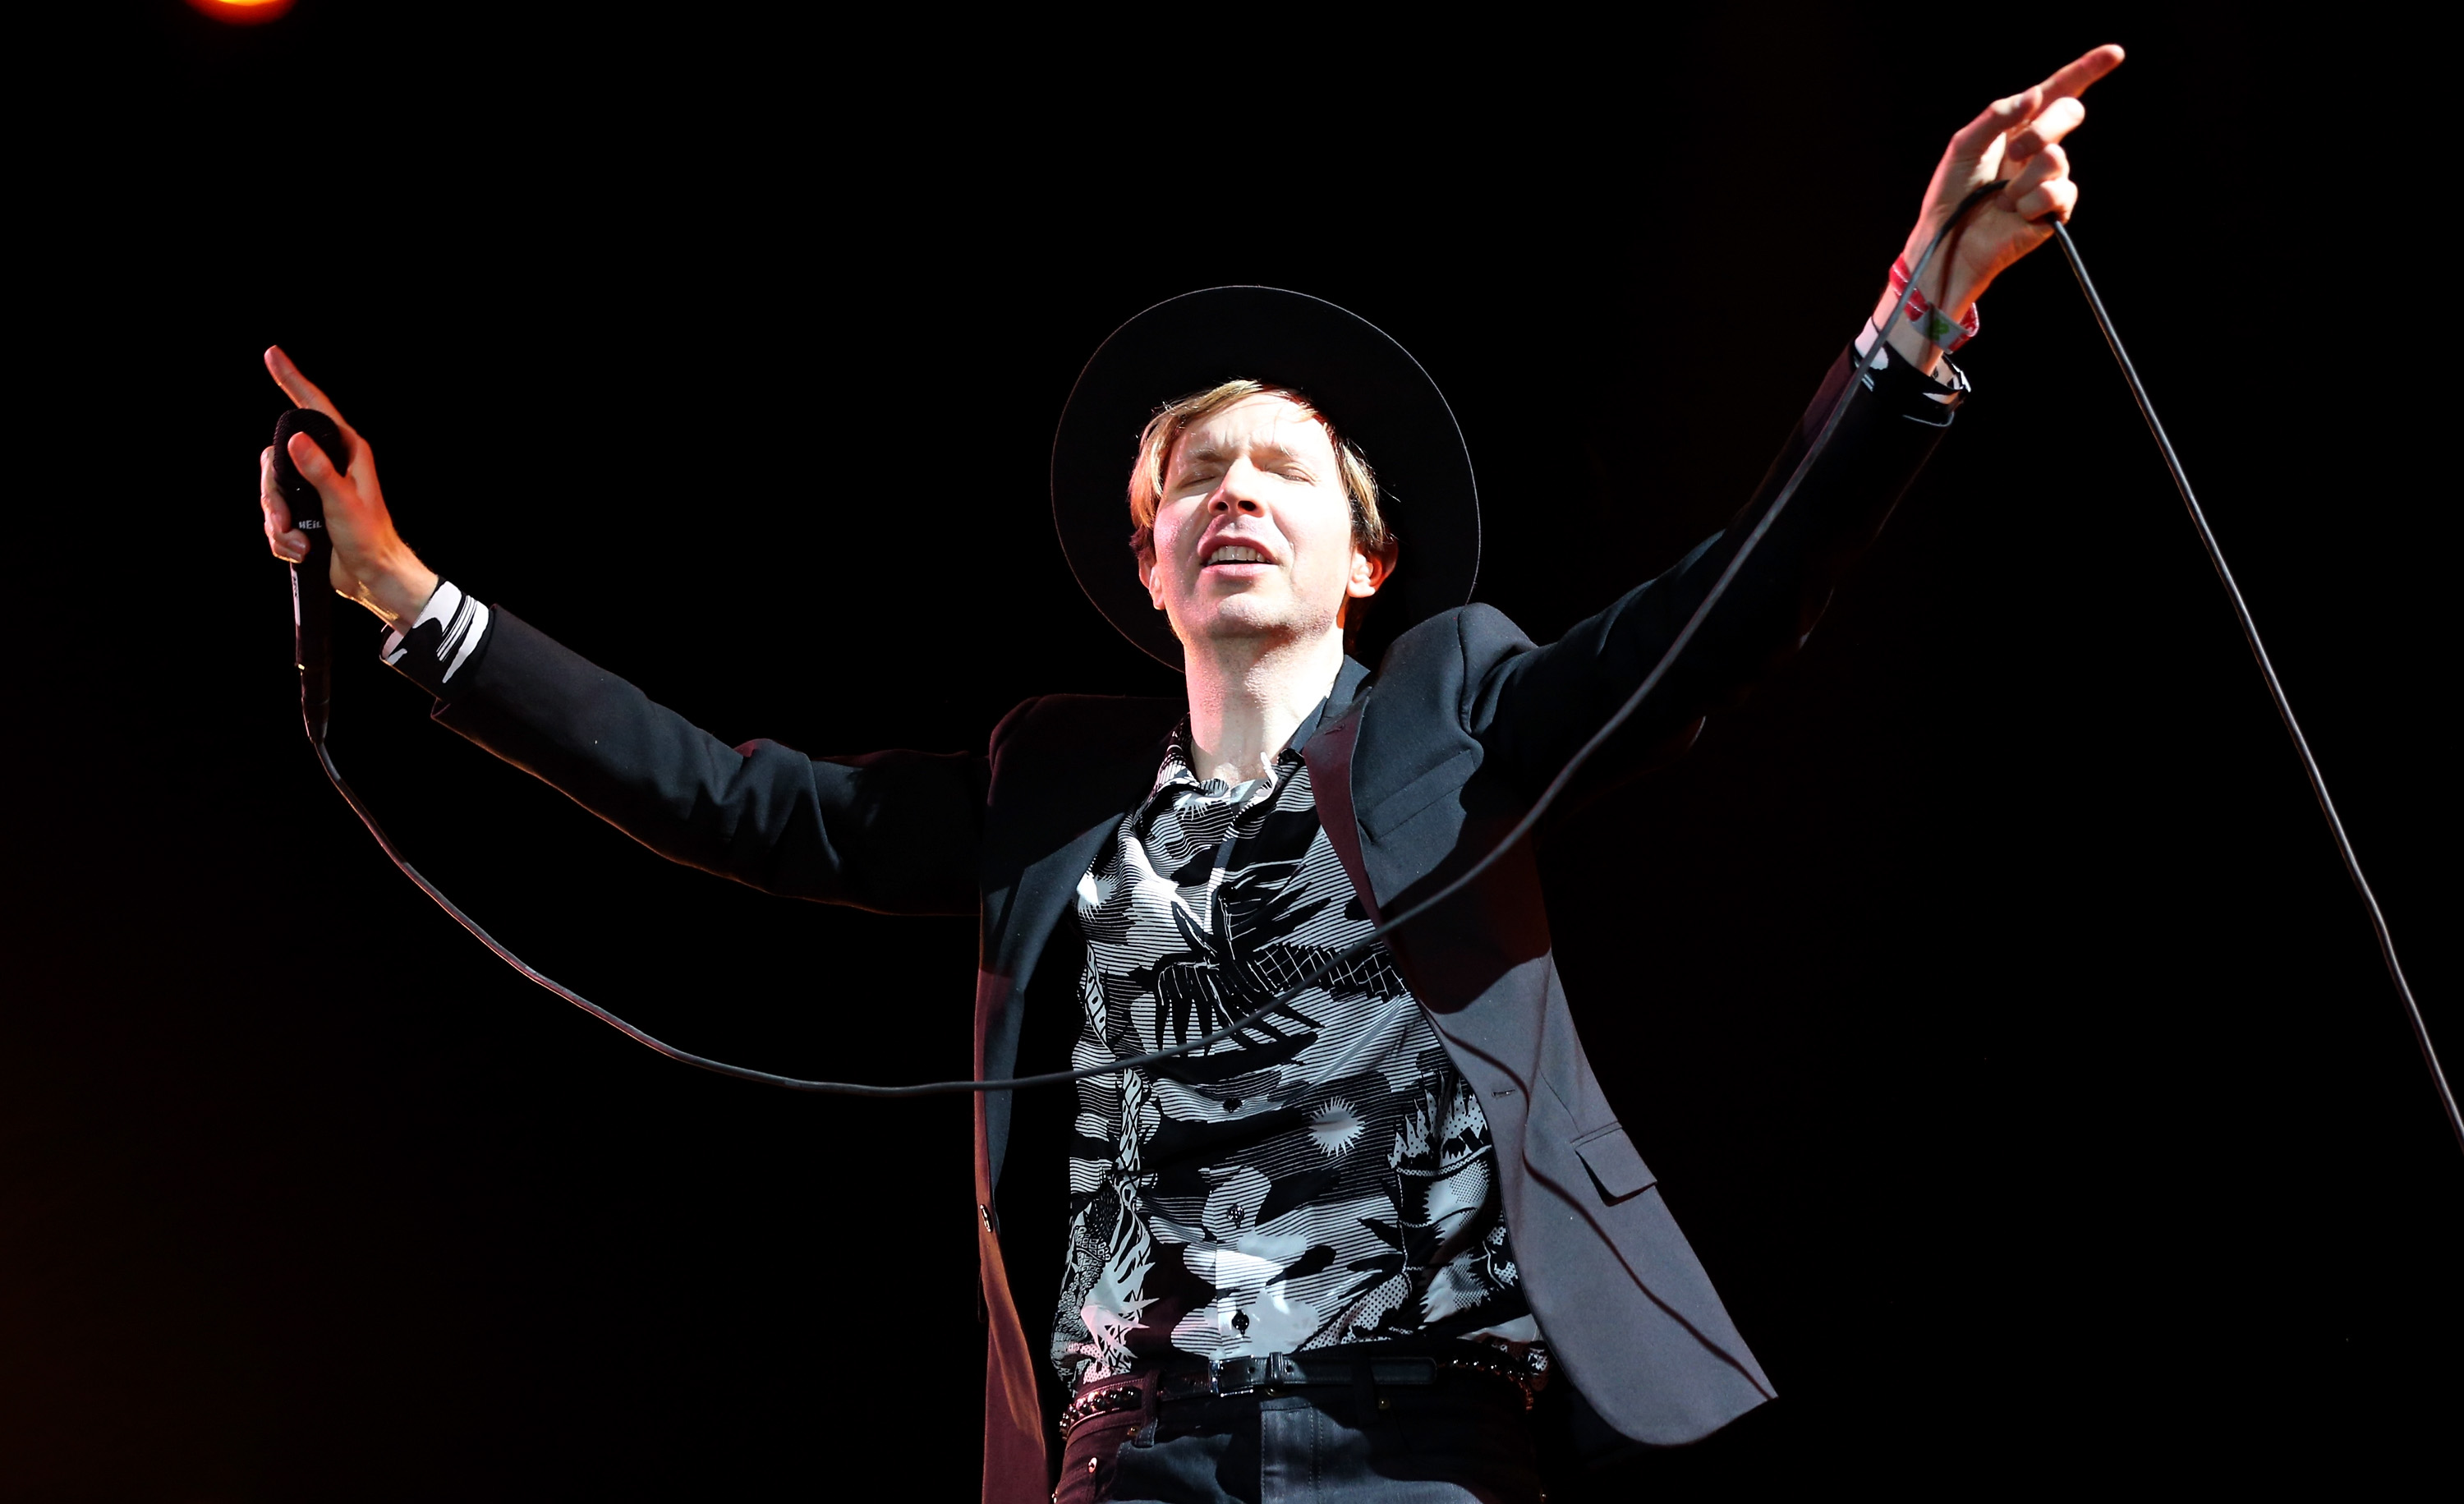 INDIO, CA - APRIL 20:  Musician Beck performs onstage during day 3 of the 2014 Coachella Valley Music & Arts Festival at